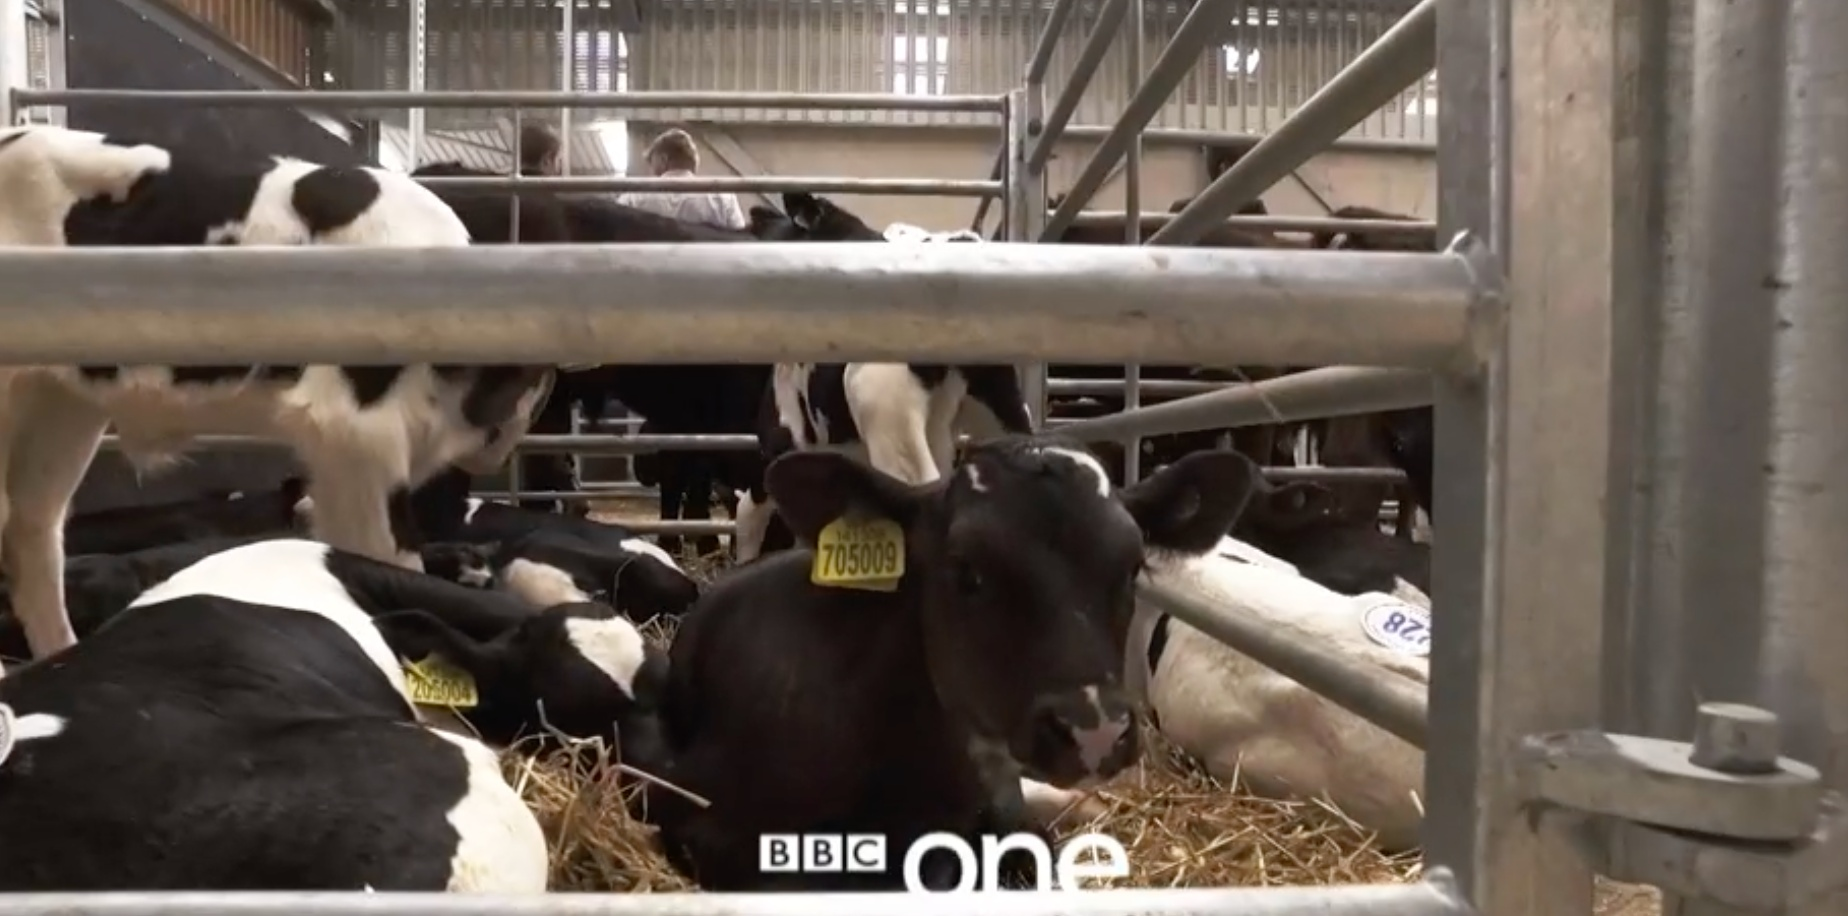 A dairy calf in BBC show 'The Dark Side of Dairy'